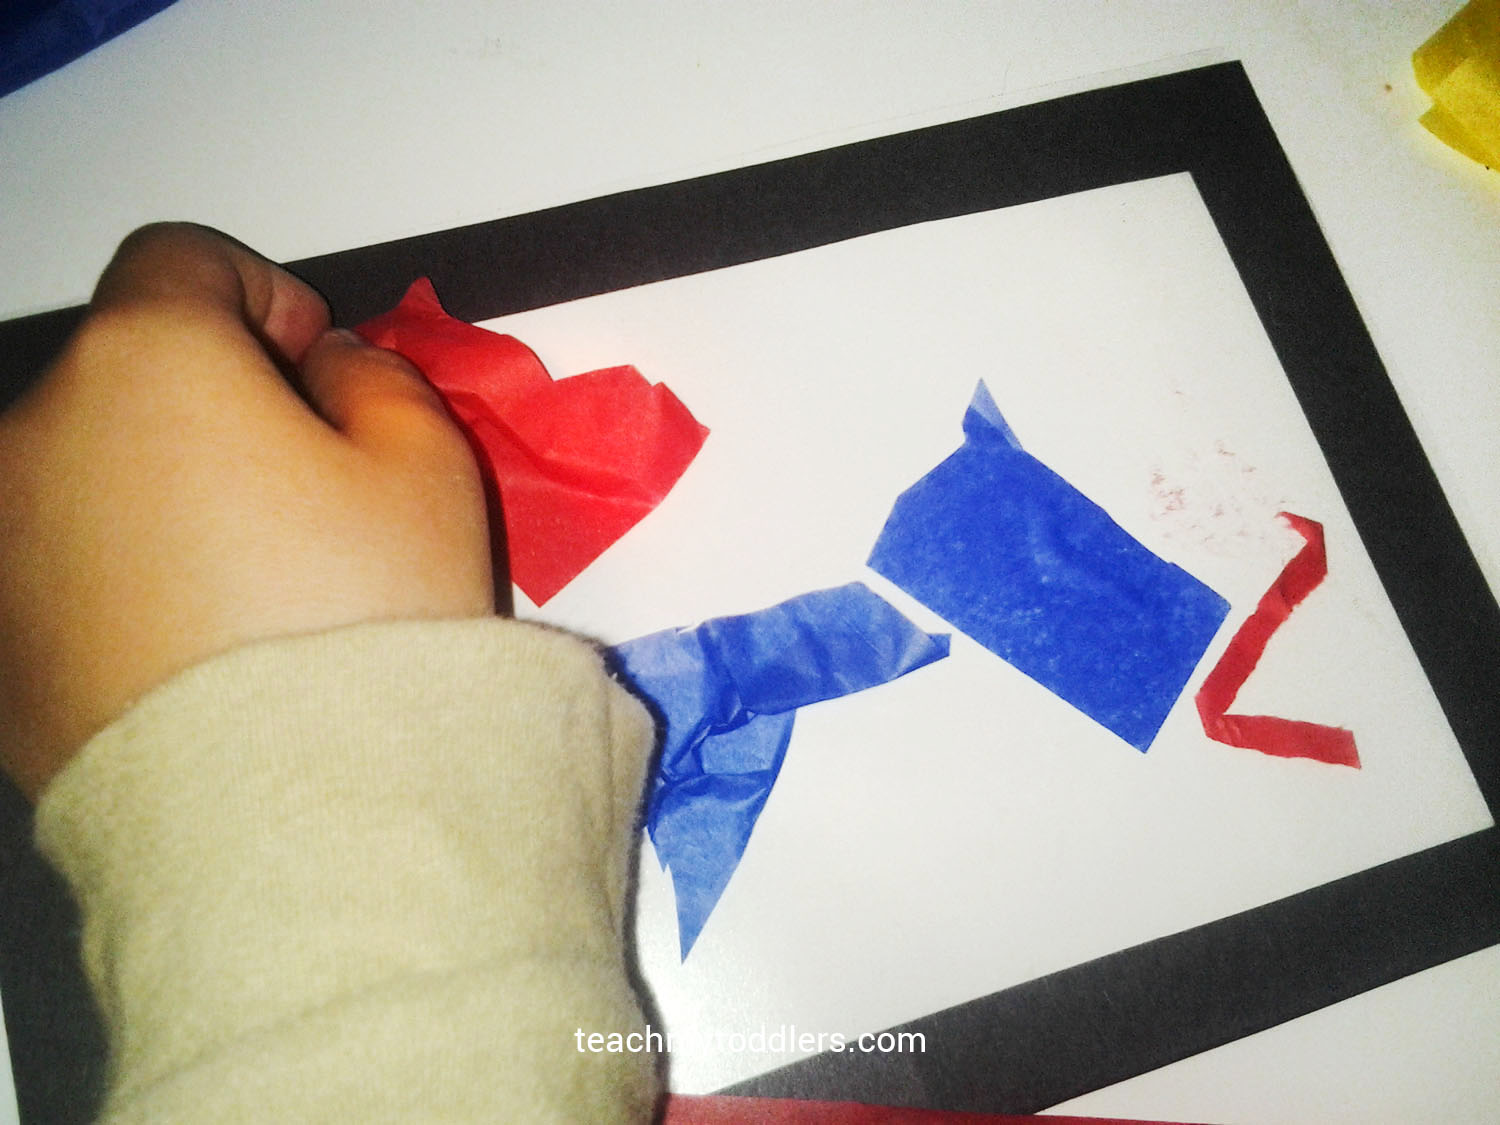 Your toddler will add paper to create stained glass shapes to their window